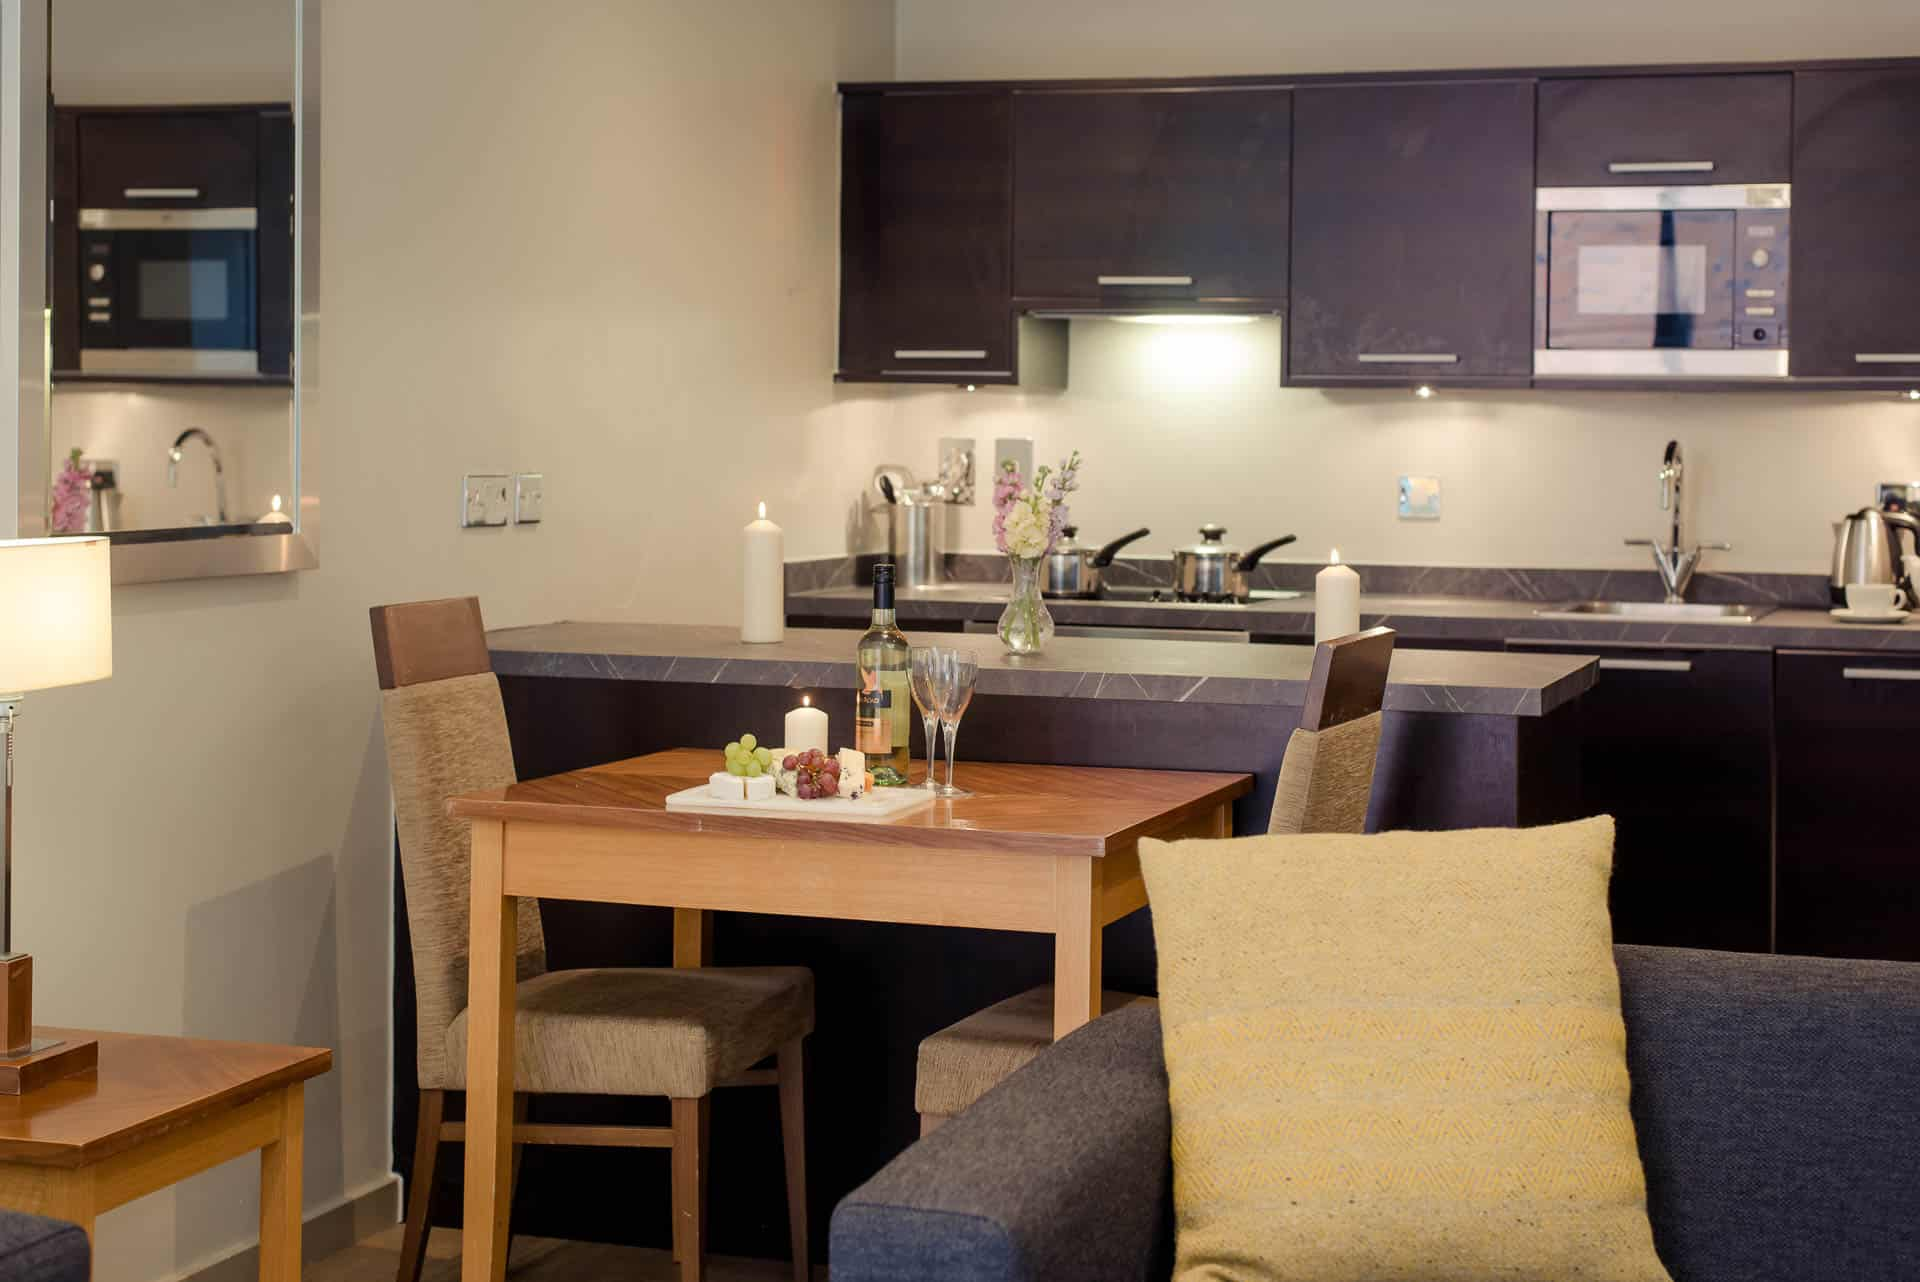 PREMIER-SUITES-Manchester-one-bedroom-apartment-dining-and-kitchen-area